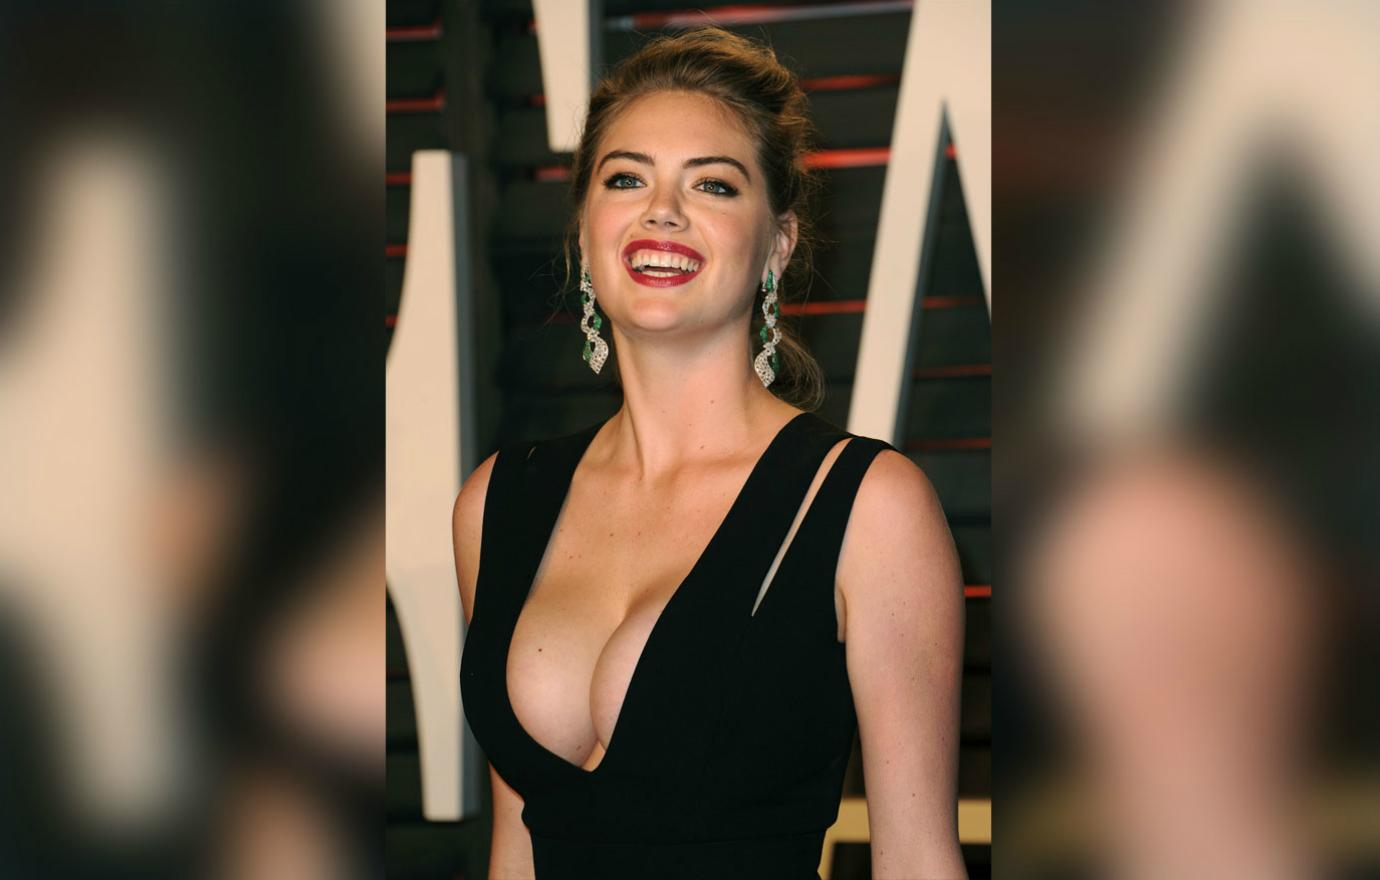 Movie star big boobs 15 Busty Celebrities With Knockout Curves